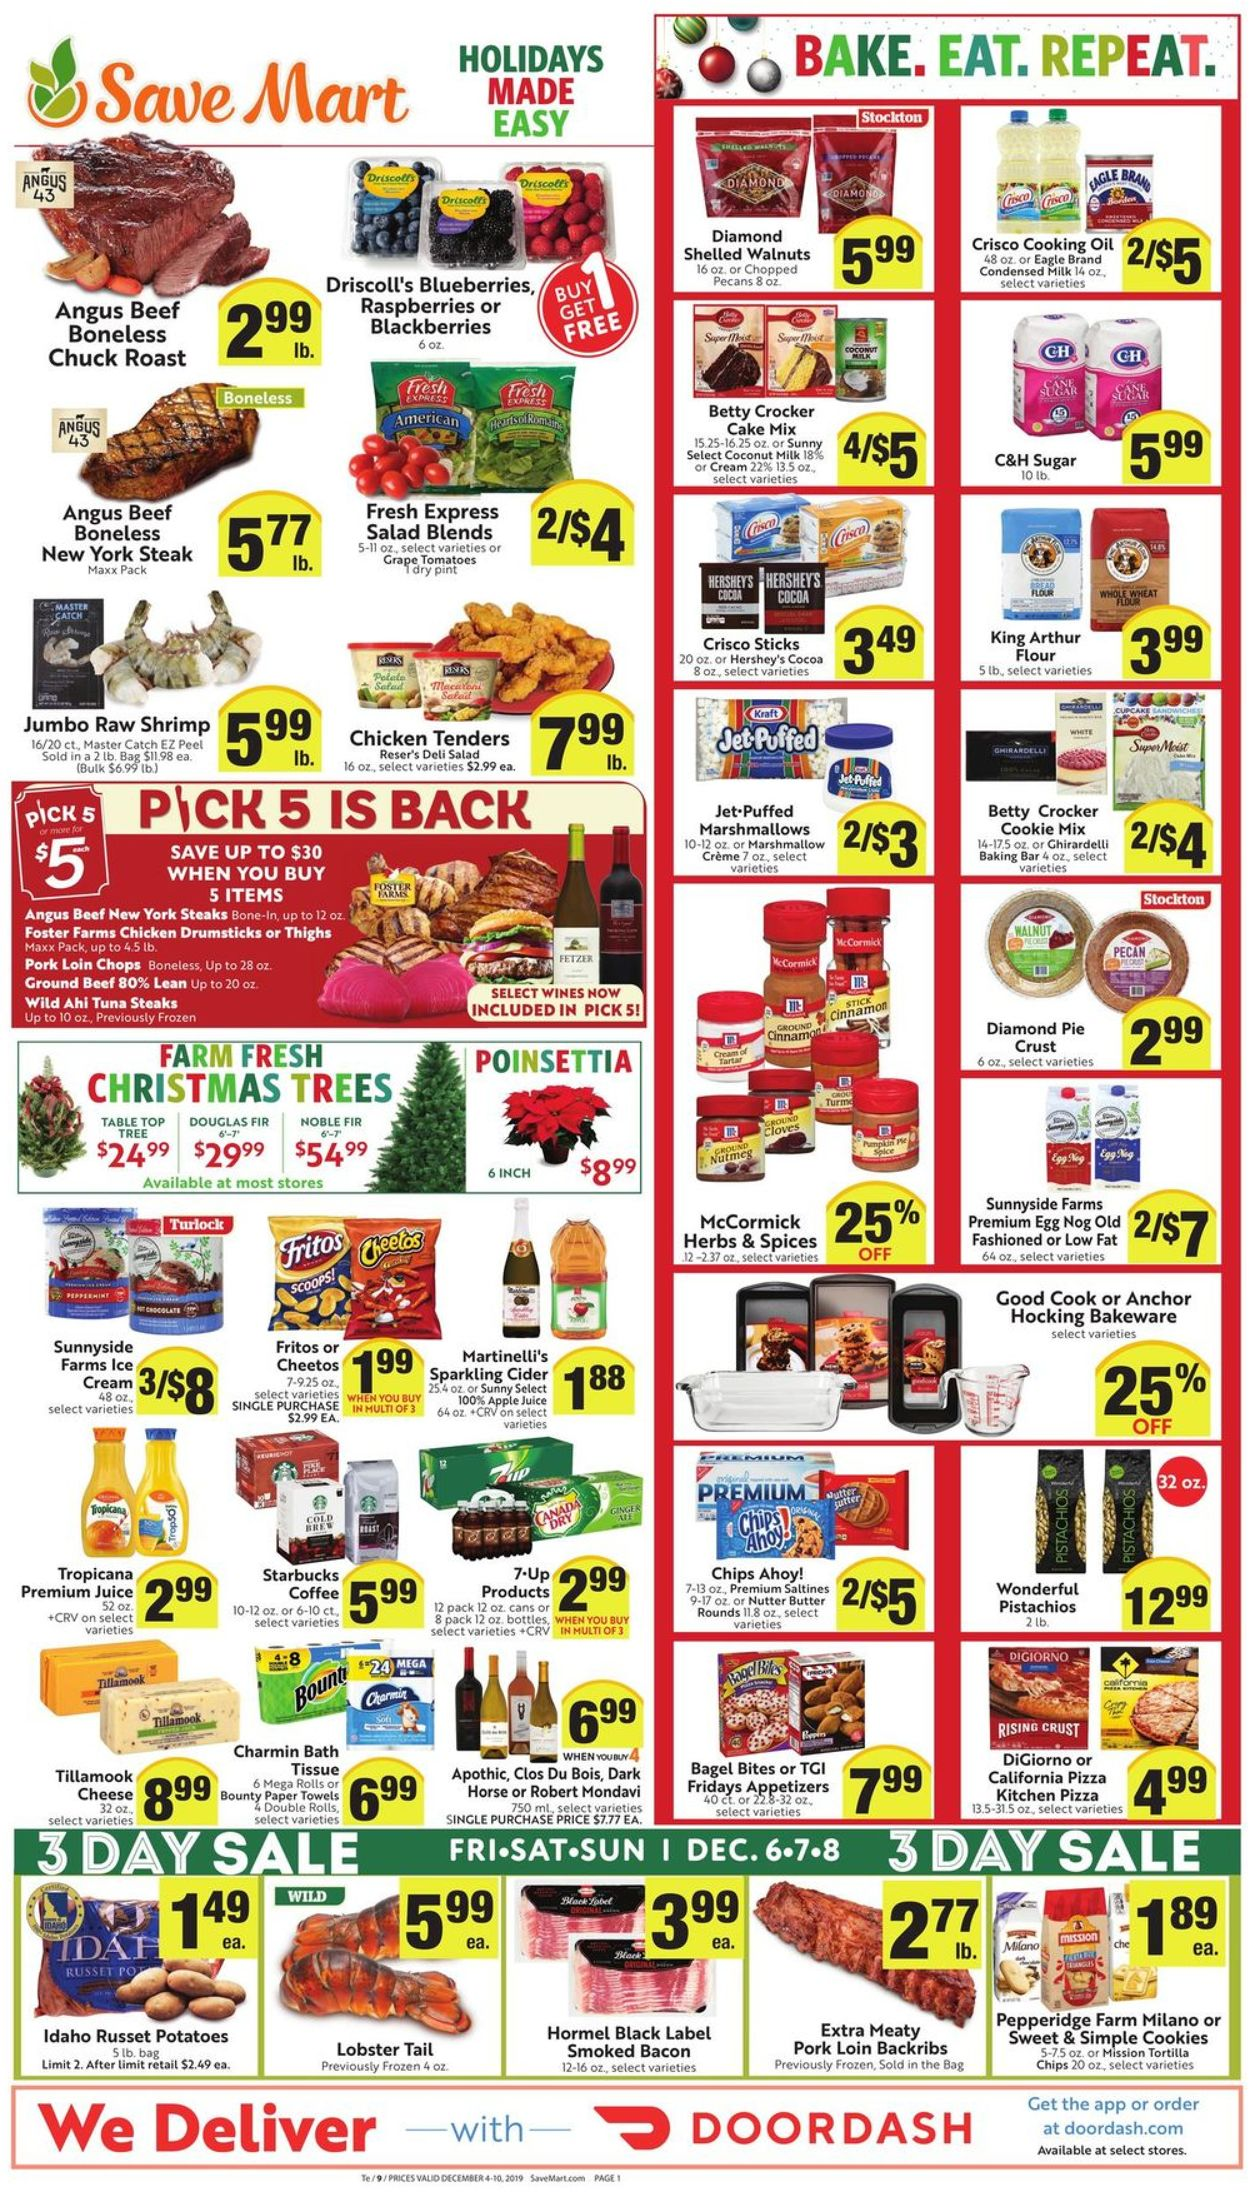 Catalogue Save Mart - Holidays Ad 2019 from 12/04/2019